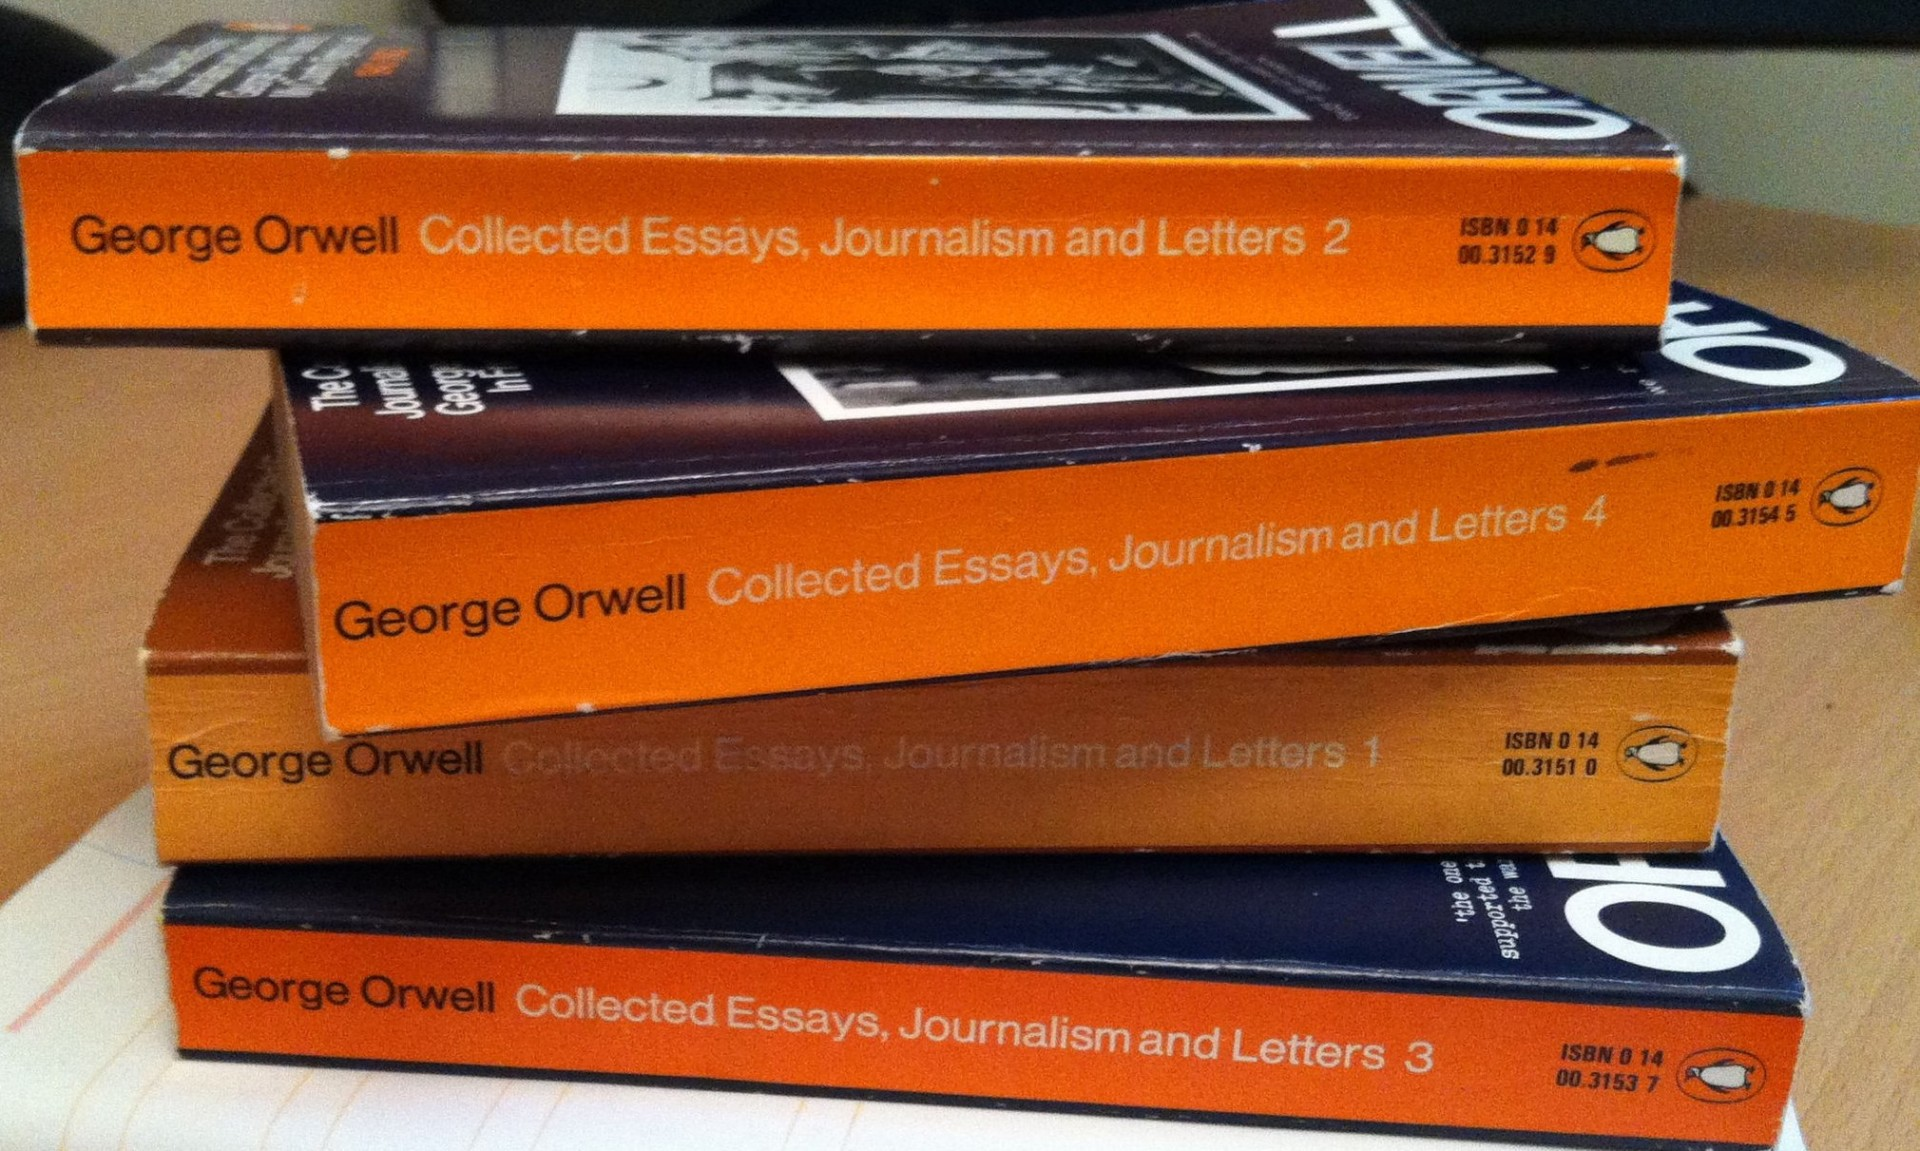 004 Orwell Essays Essay Example Singular Amazon Pdf Epub 1920